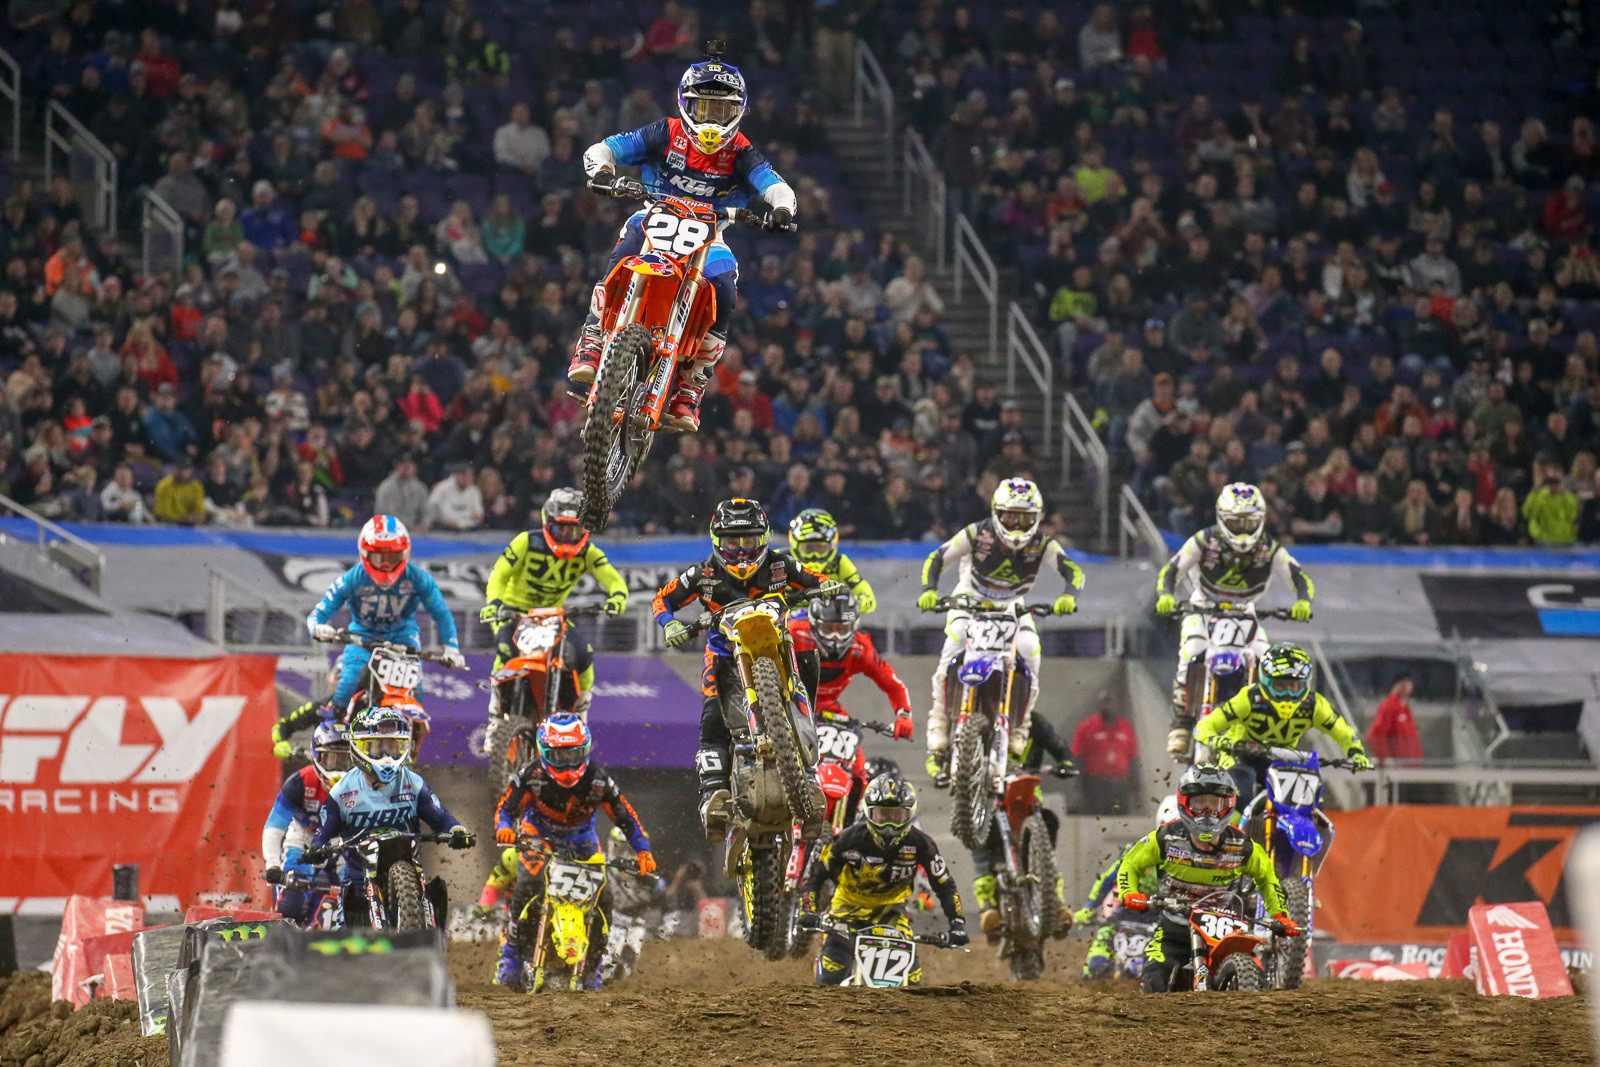 It's always good to get a new injection of energy after a few rounds into the season when the 250 East guys take to the track. Jordon Smith scored the first heat win of their season.